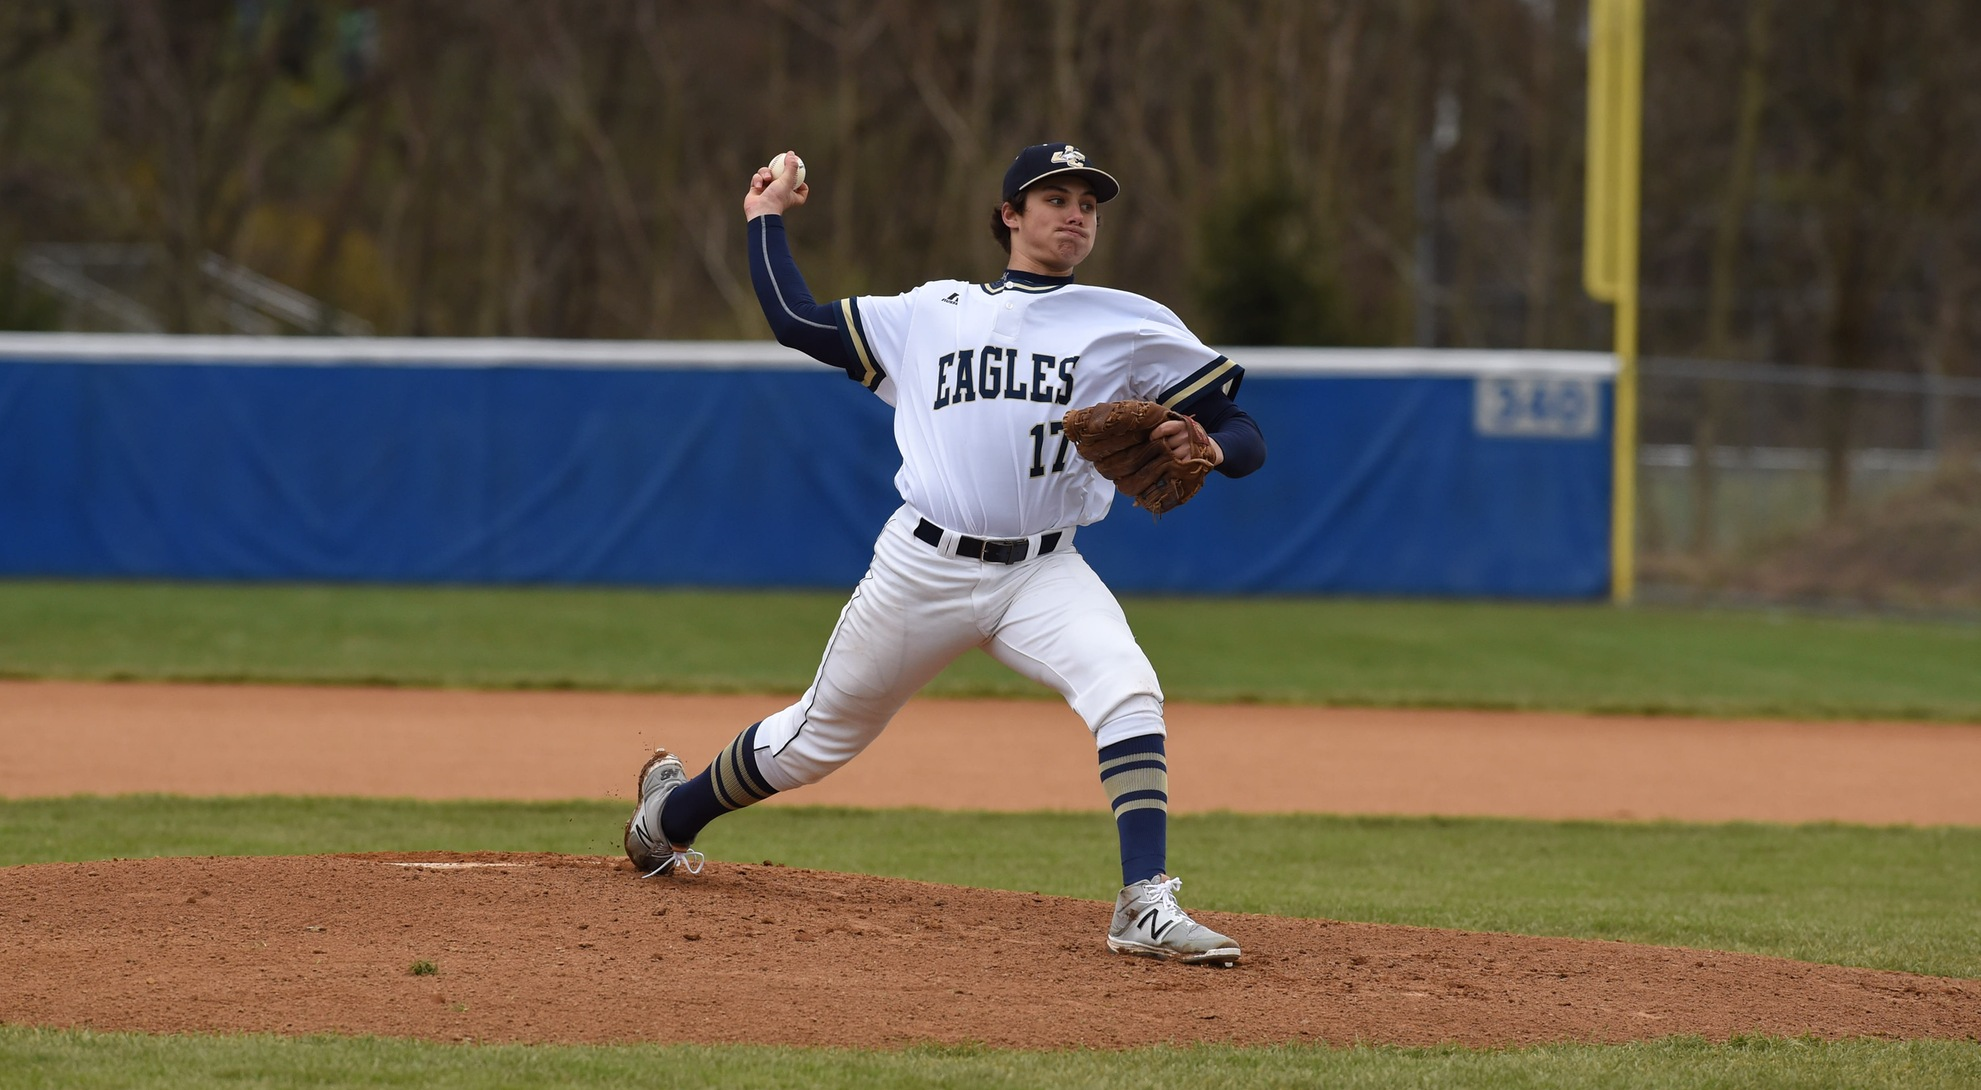 Juniata Baseball Falls to Susquehanna in Doubleheader